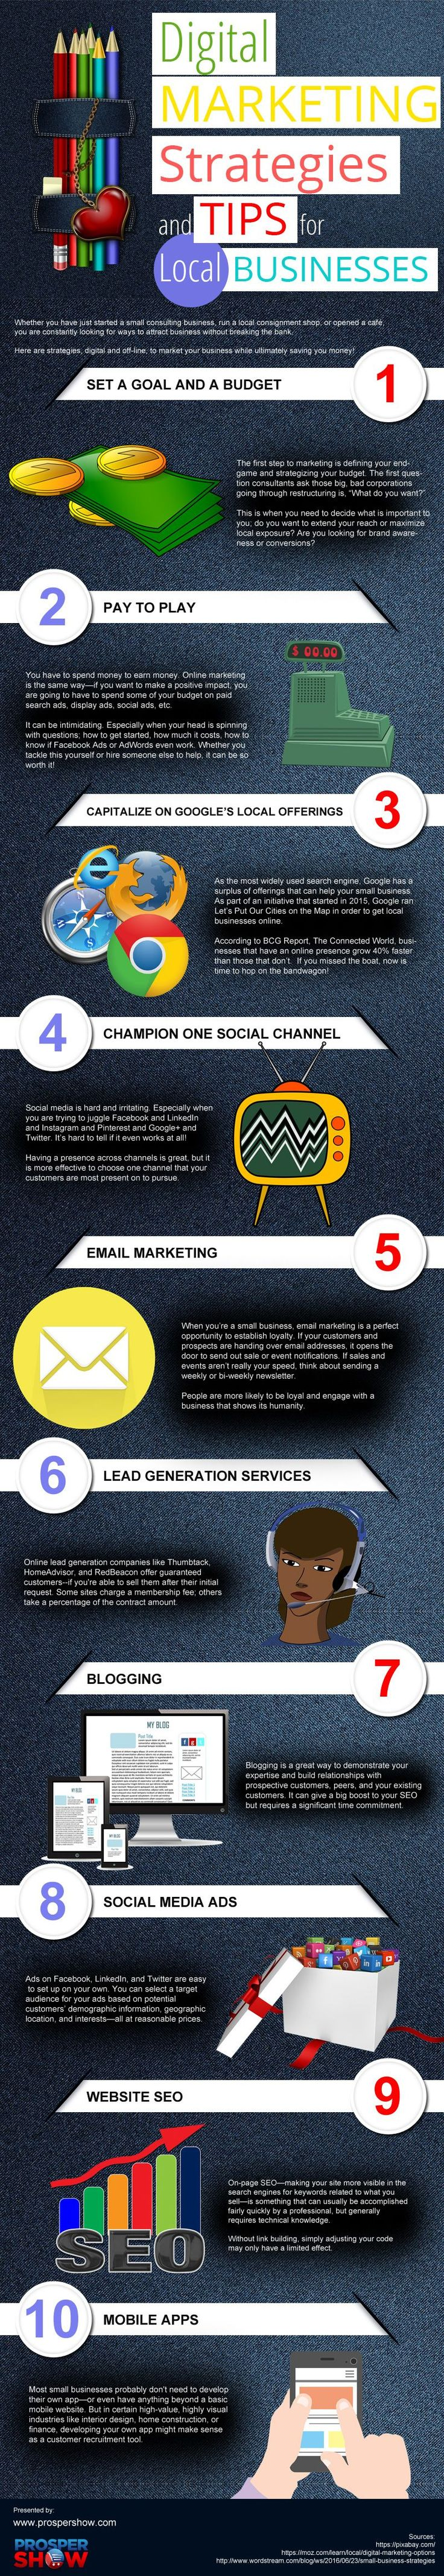 A good infographic introducing local businesses to digital marketing, and a round-up detailing the essential digital marketing strategies, including SEO and capitalizing on social media